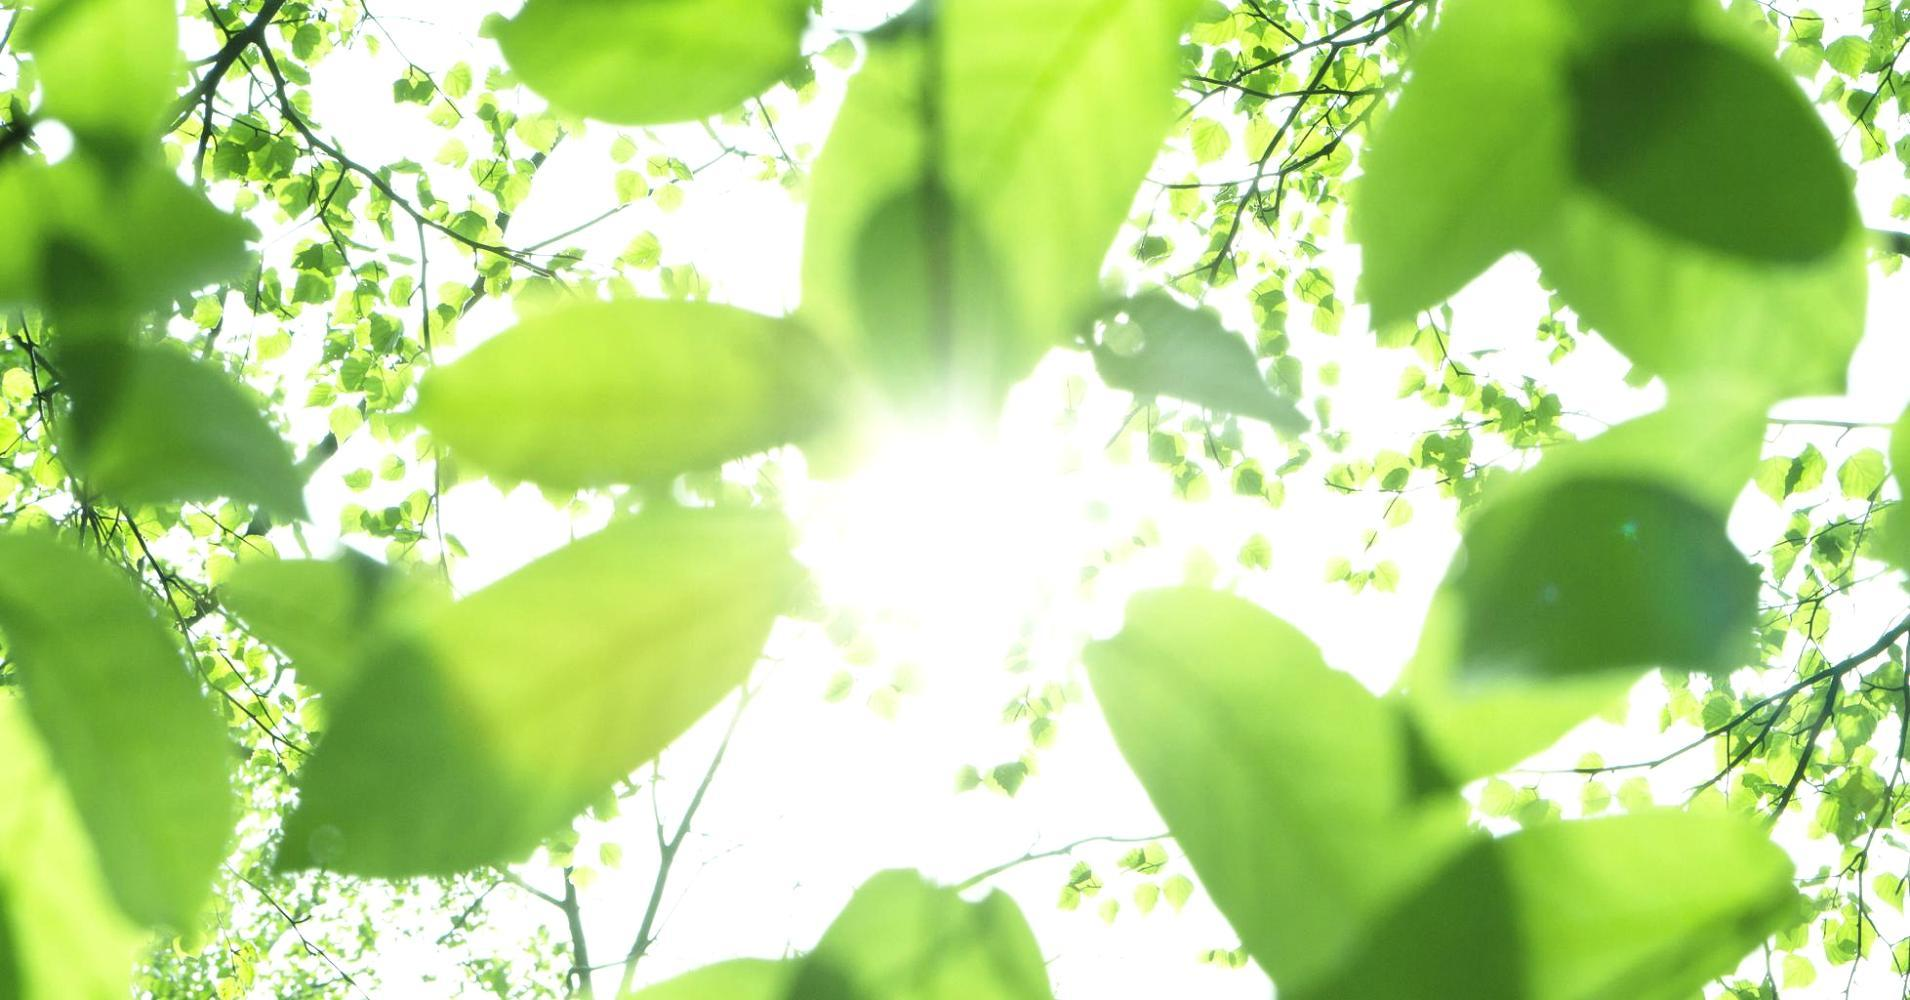 Power plant: High-tech photosynthesis